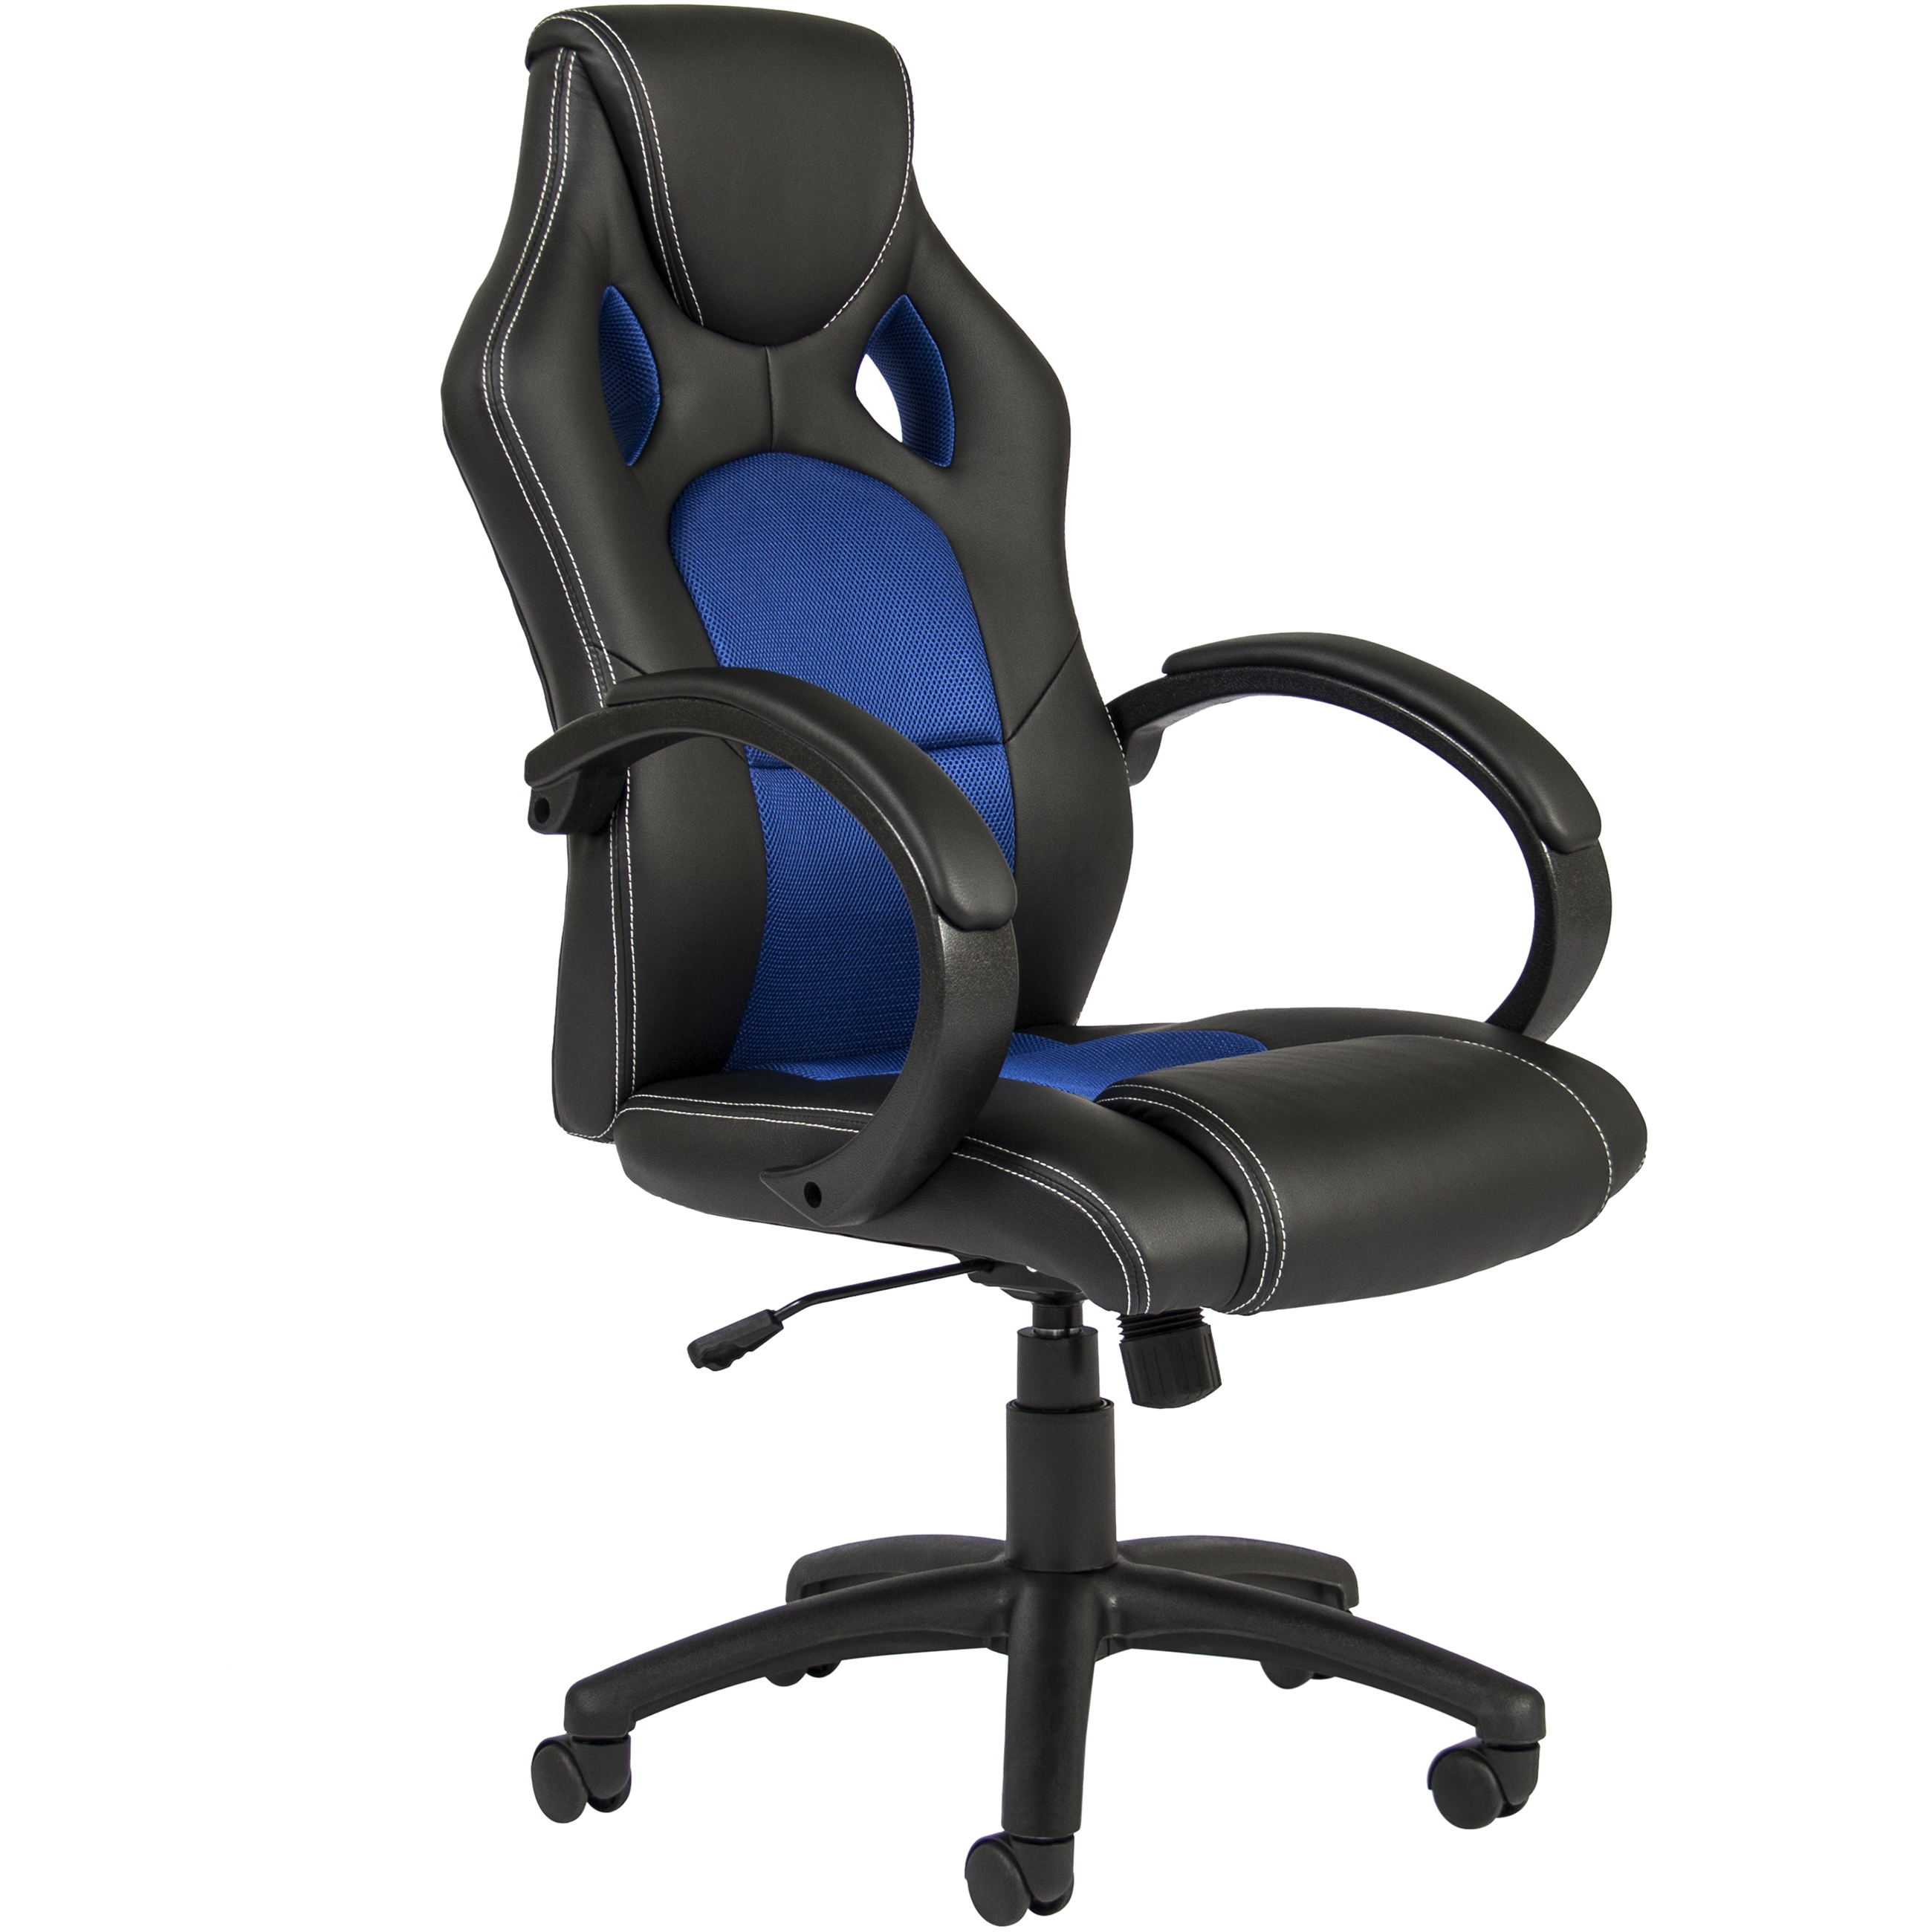 Executive Racing Gaming Office Chair PU Leather Swivel Computer Desk Seat  High Back